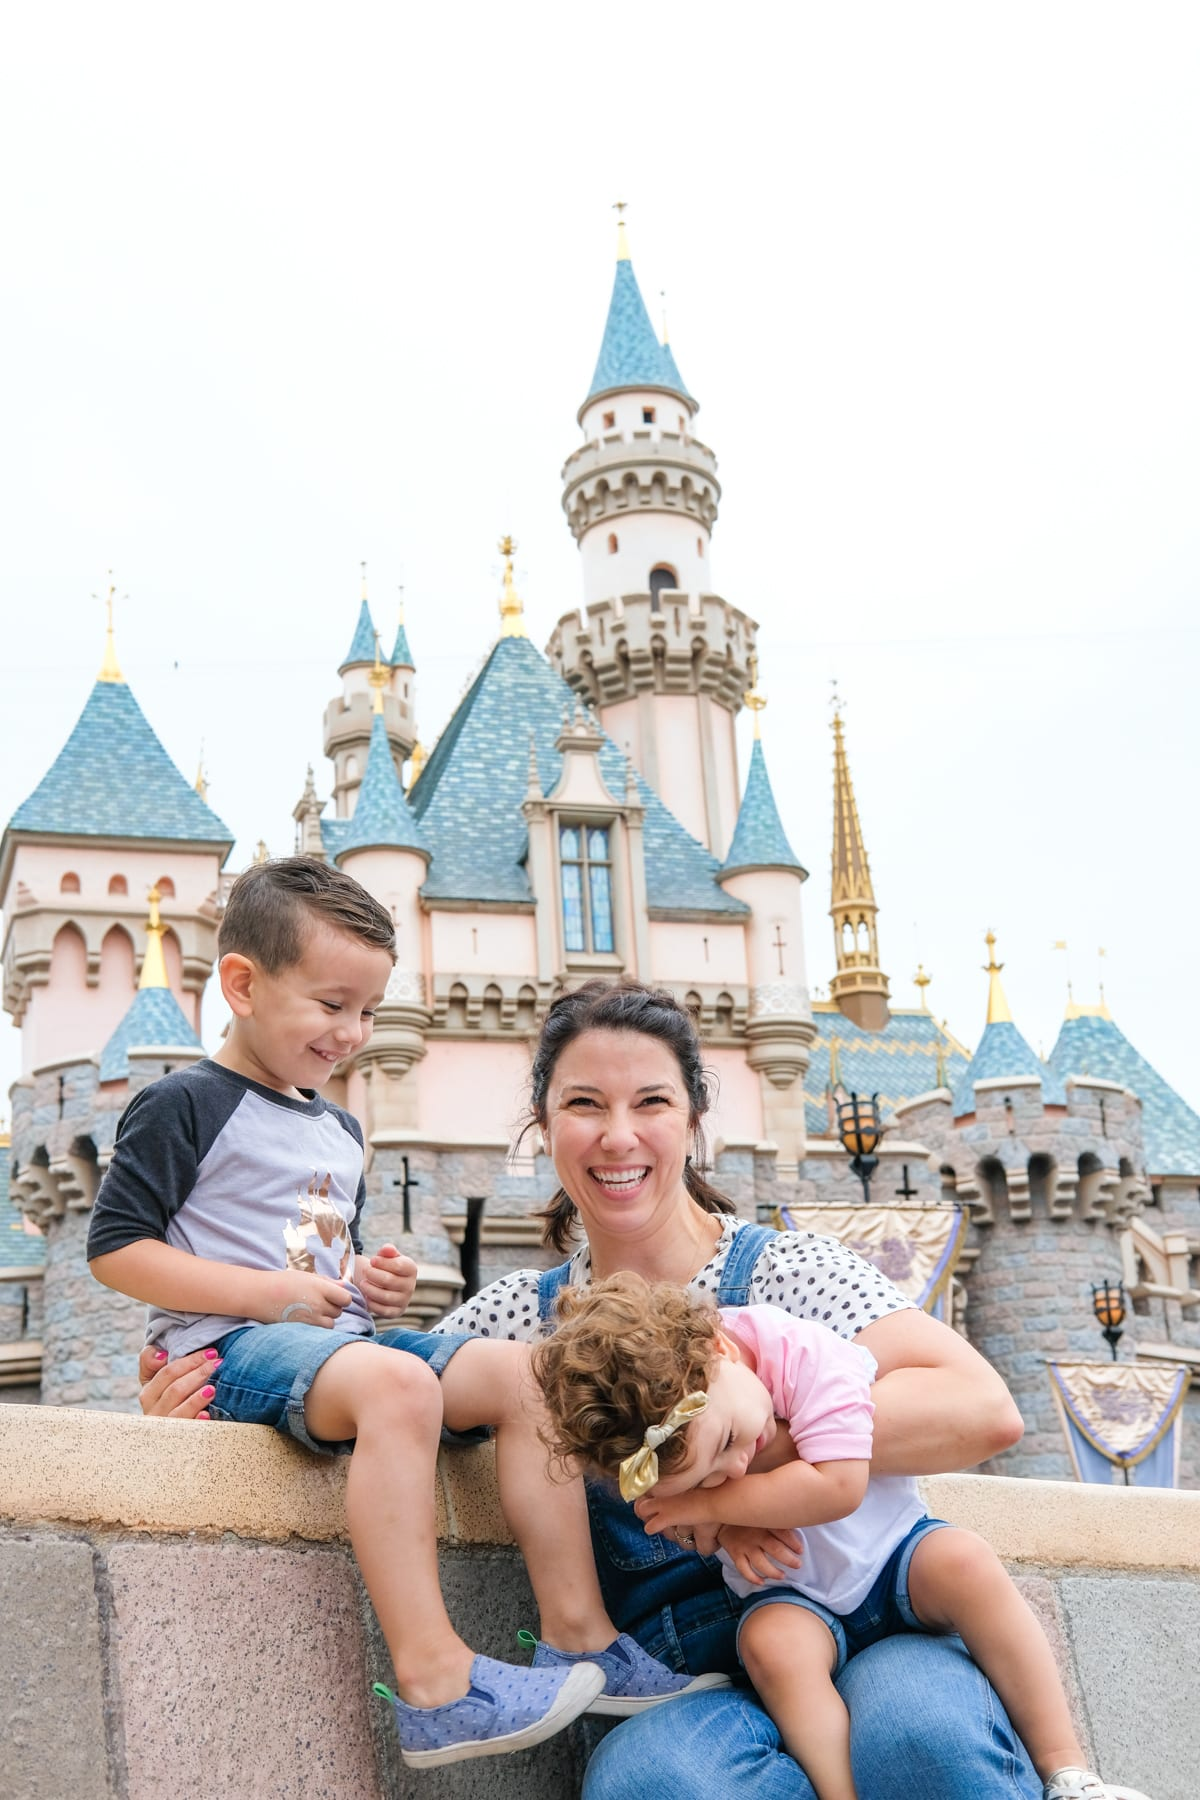 How to take awesome Disneyland family photos